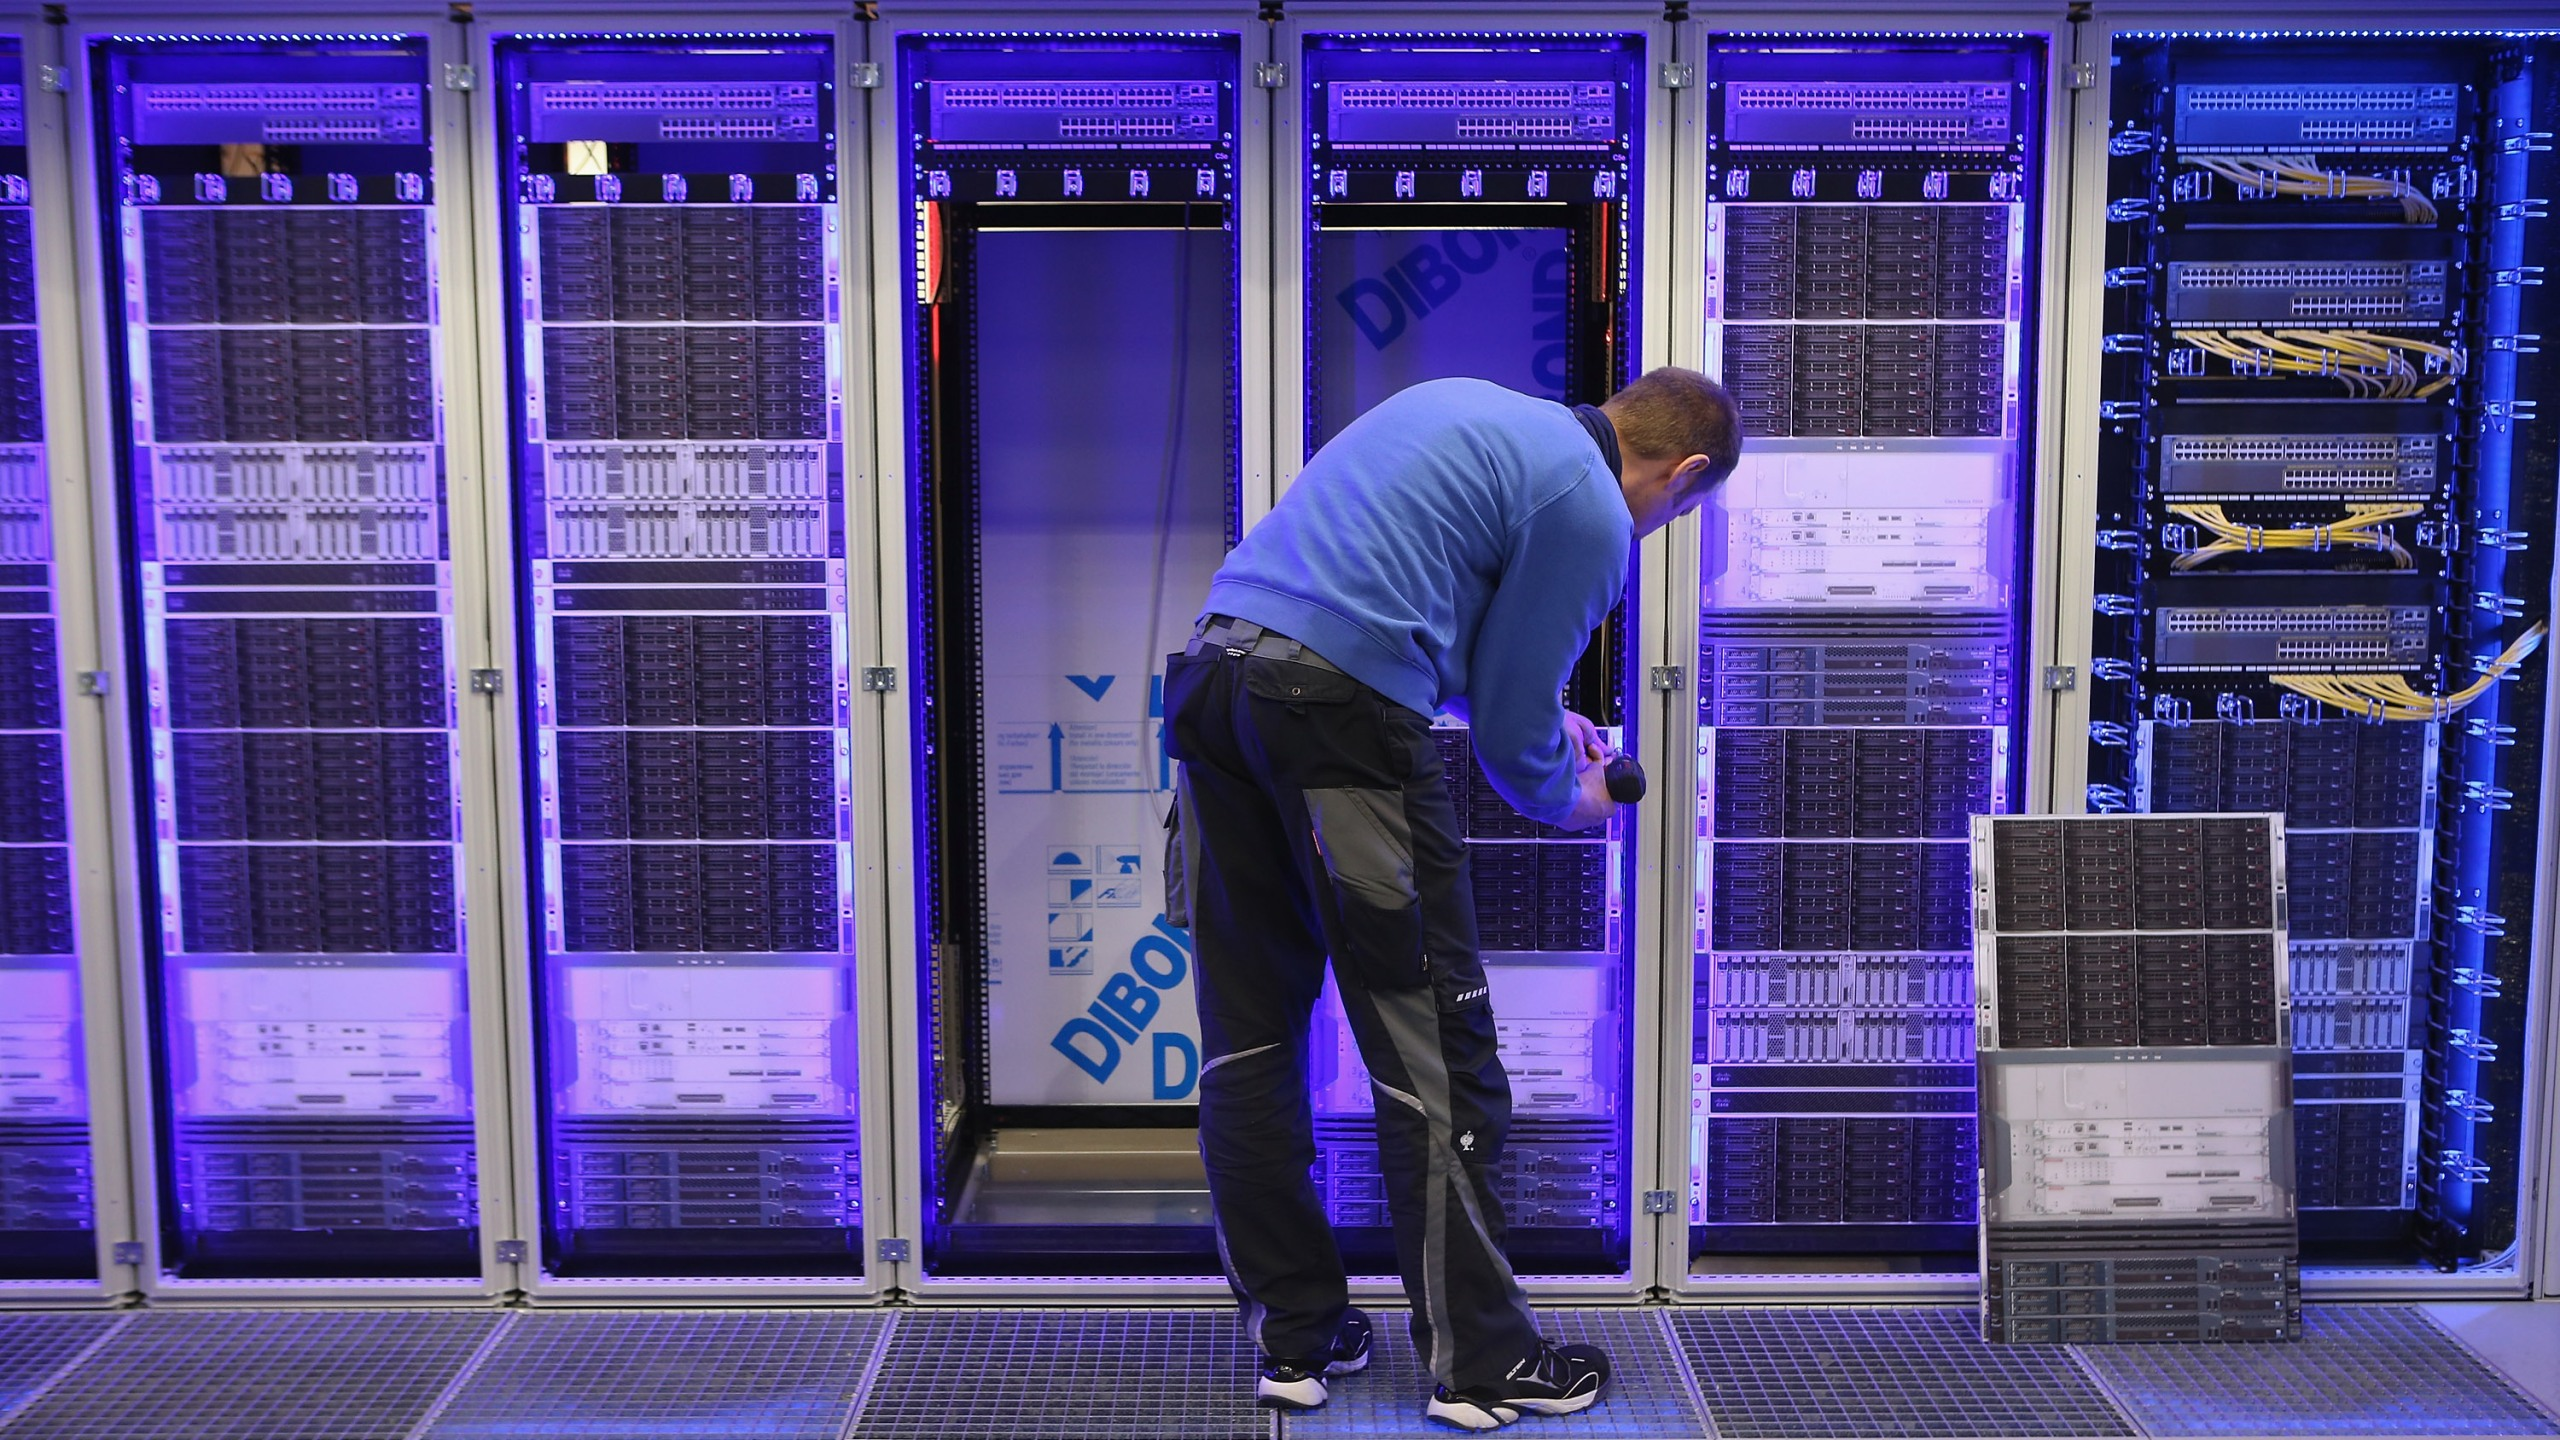 A worker assembles a data center module container at the Rittal stand at the 2013 CeBIT technology trade fair in Hanover, Germany, on March 4, 2013. (Credit: Sean Gallup / Getty Images)